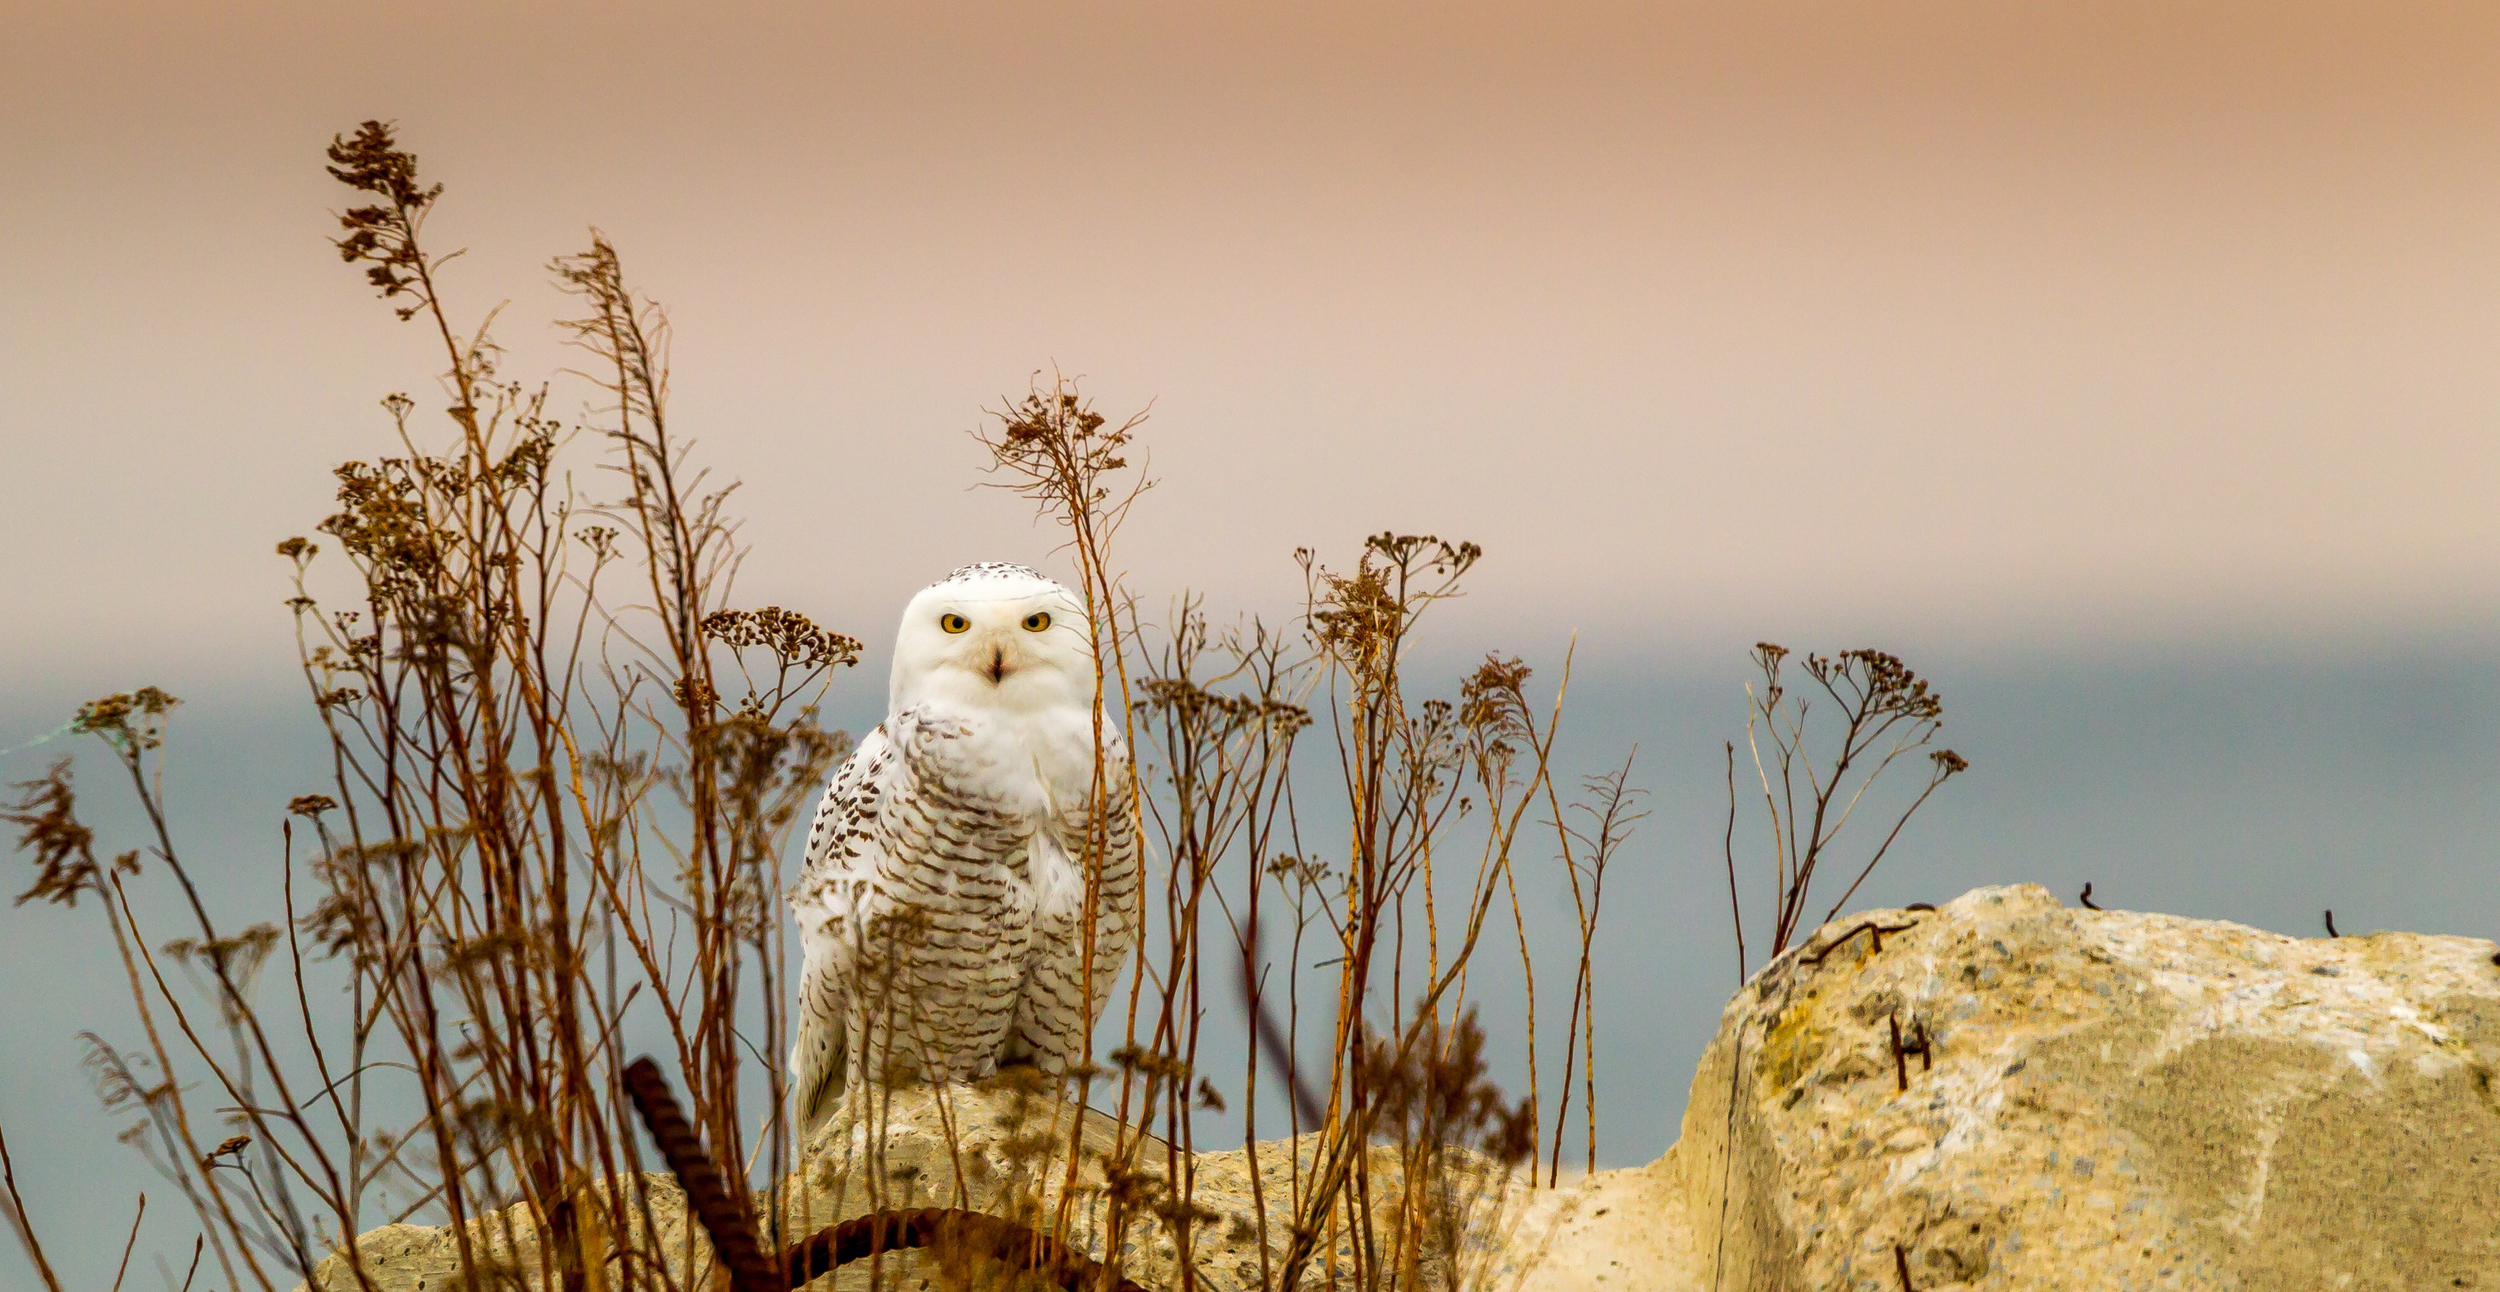 Snowy White Owl shot at Tommy Thompson Park